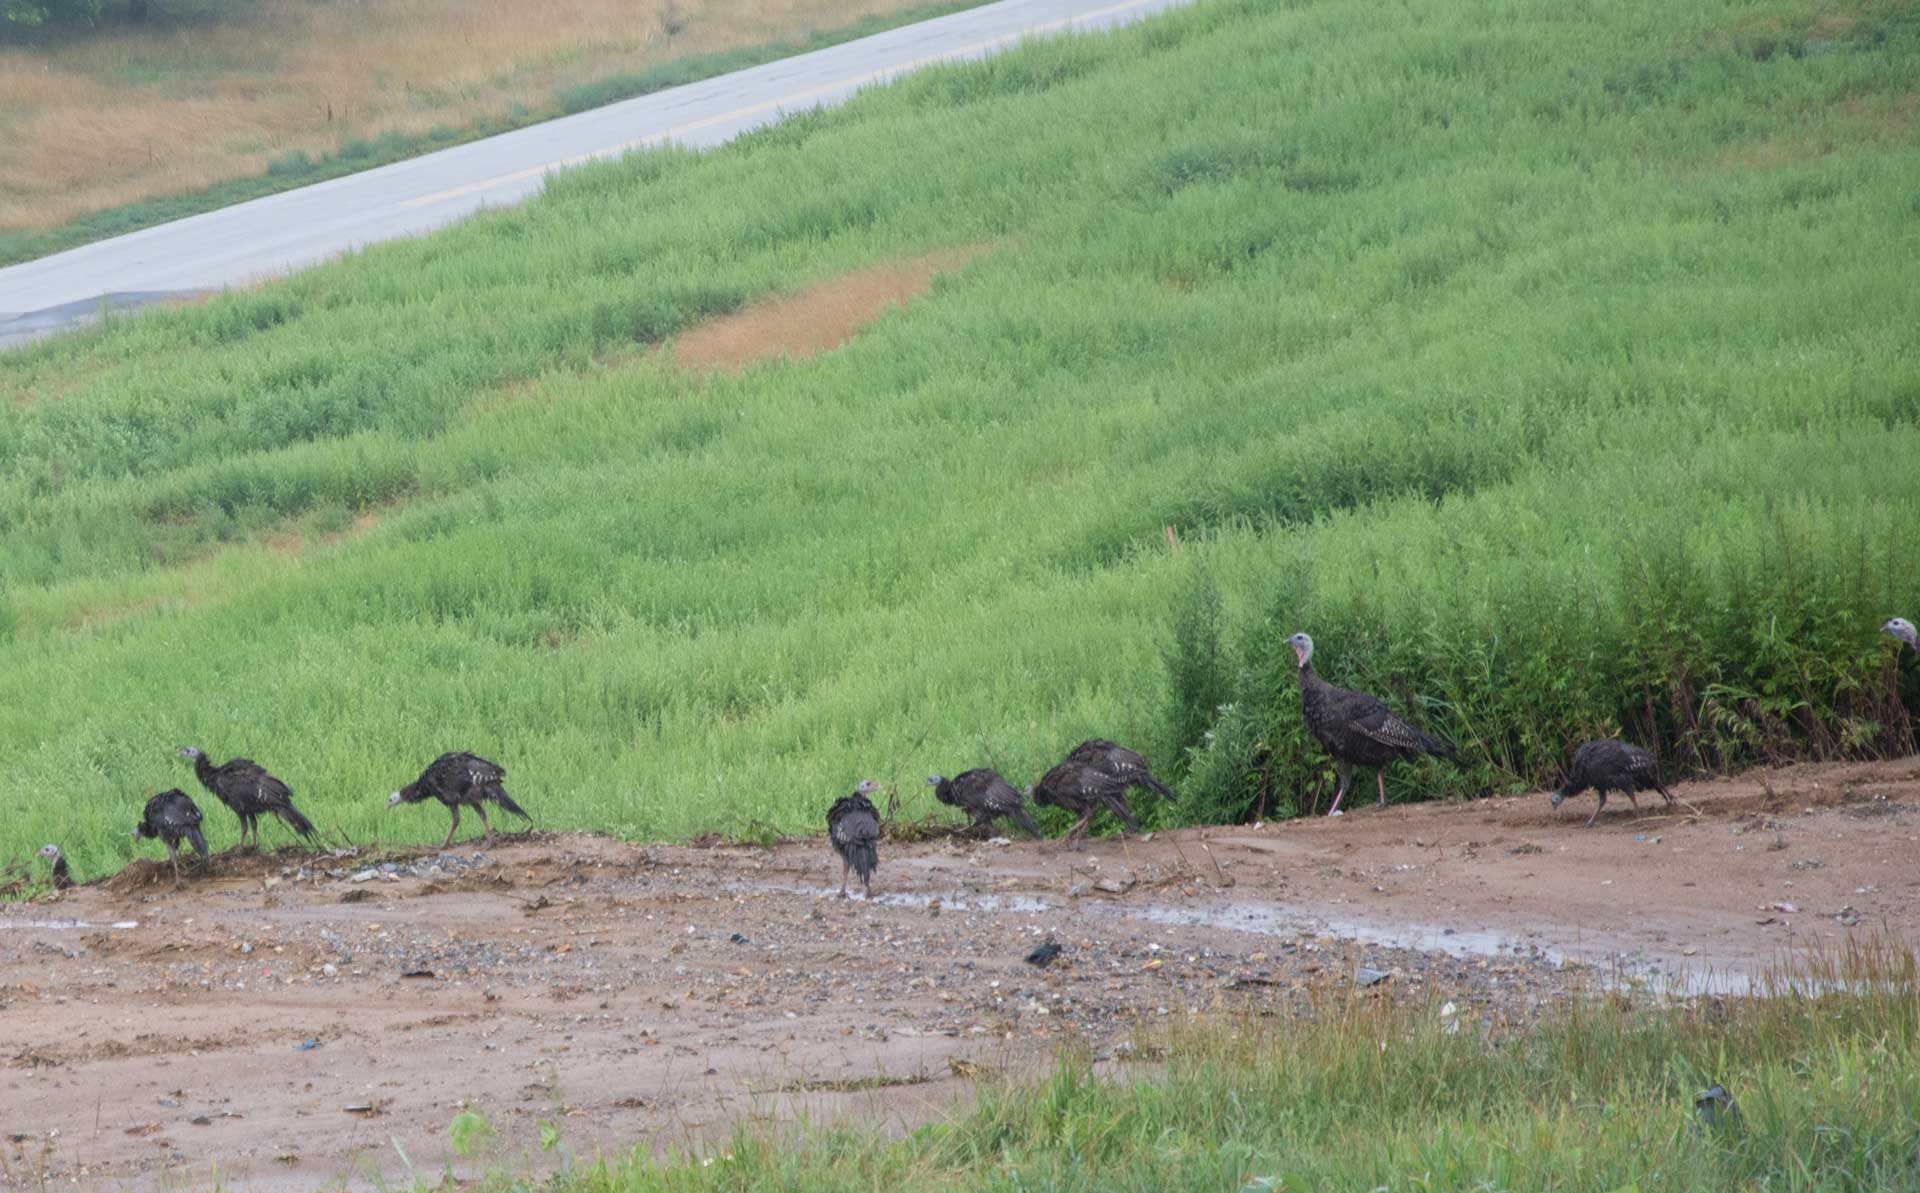 Turkeys on the Landfill